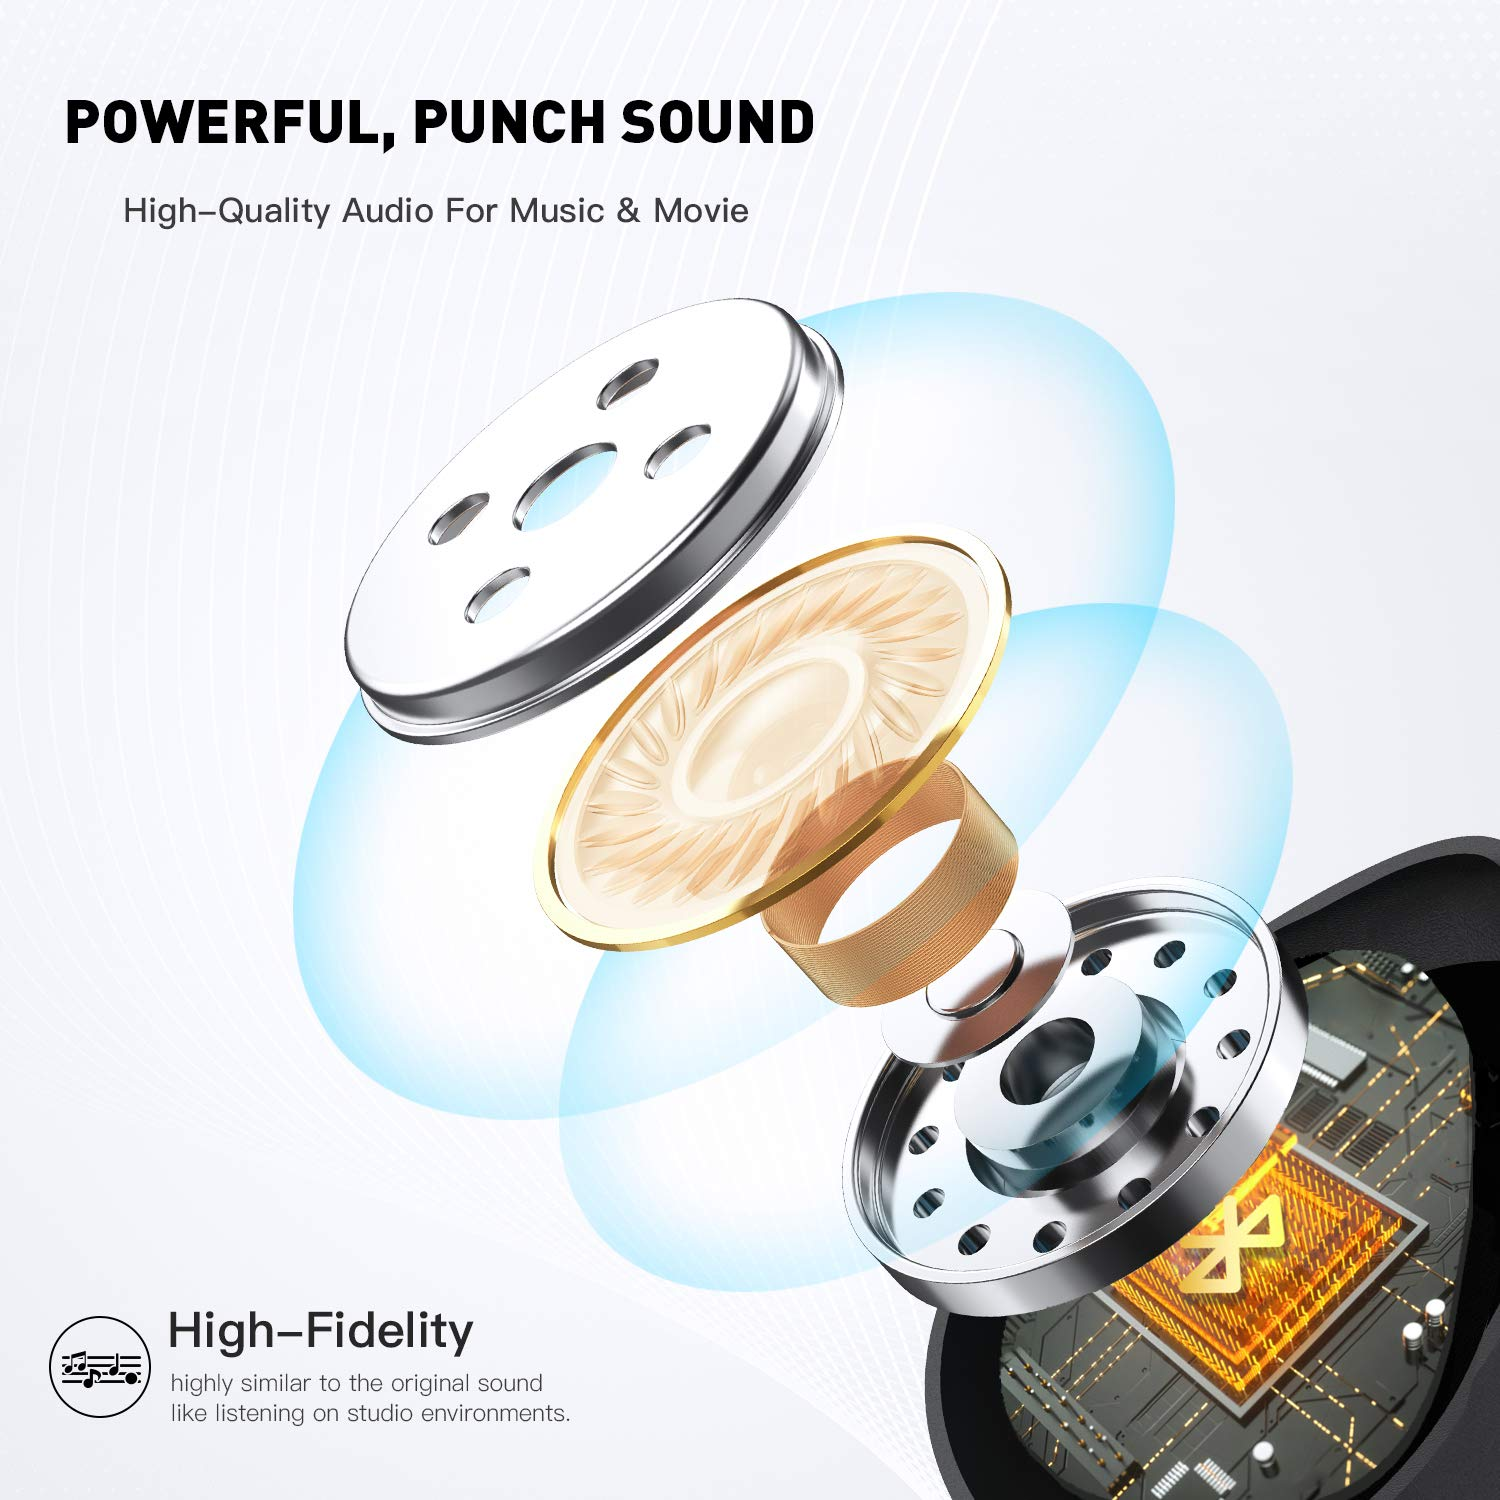 Bluetooth 5.0 Wireless Headphones, ENACFIRE Future Plus Wireless Bluetooth Earbuds with 104 Cycle Playing Time IPX5 Waterproof for Sport One-Key Control Hi-Fi Sound Quality Stable Connection by ENACFIRE (Image #3)